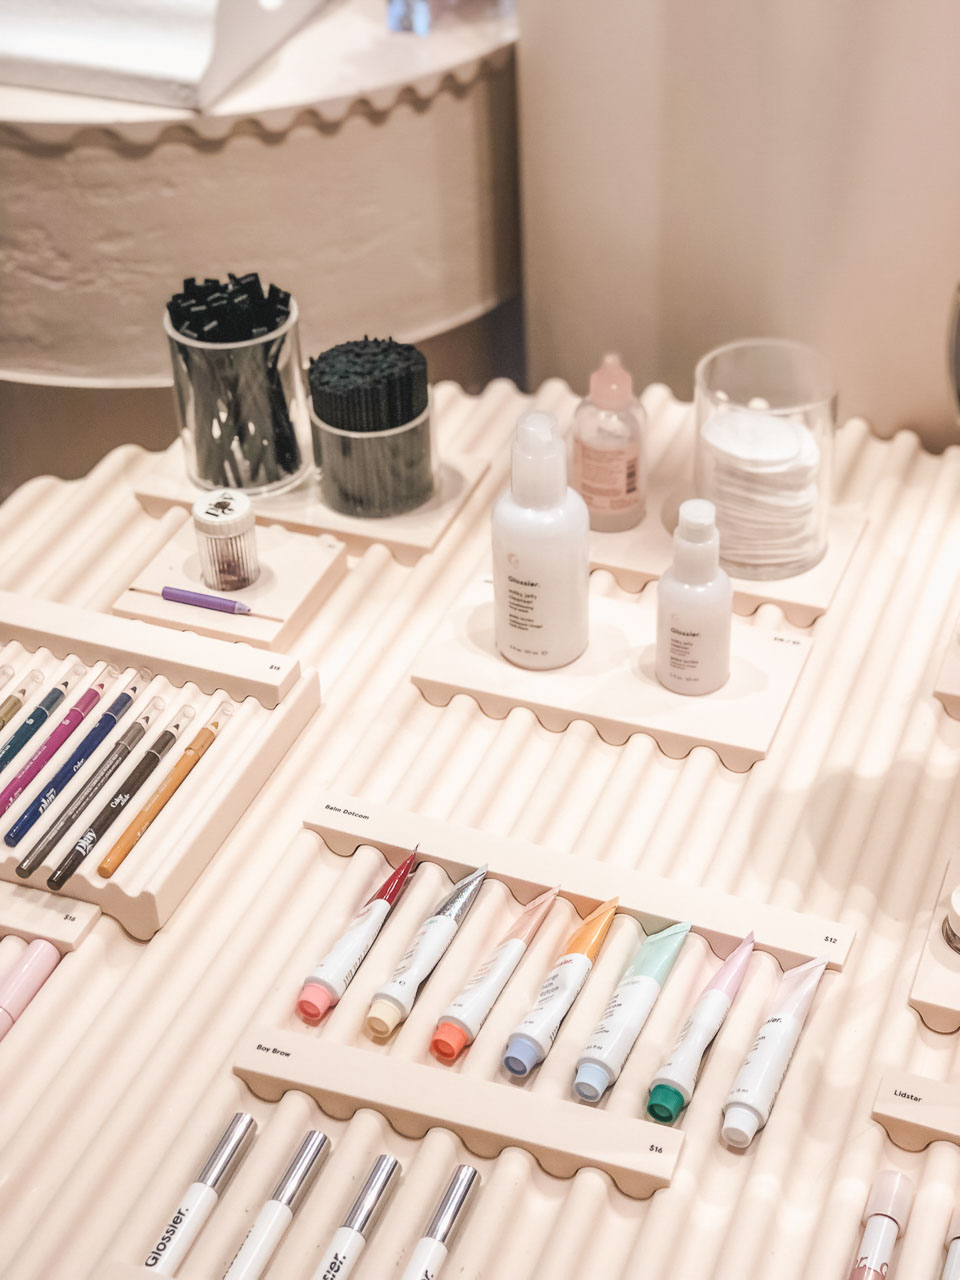 Milky jelly cleansers and lip balms on display inside the Glossier flagship store in New York City